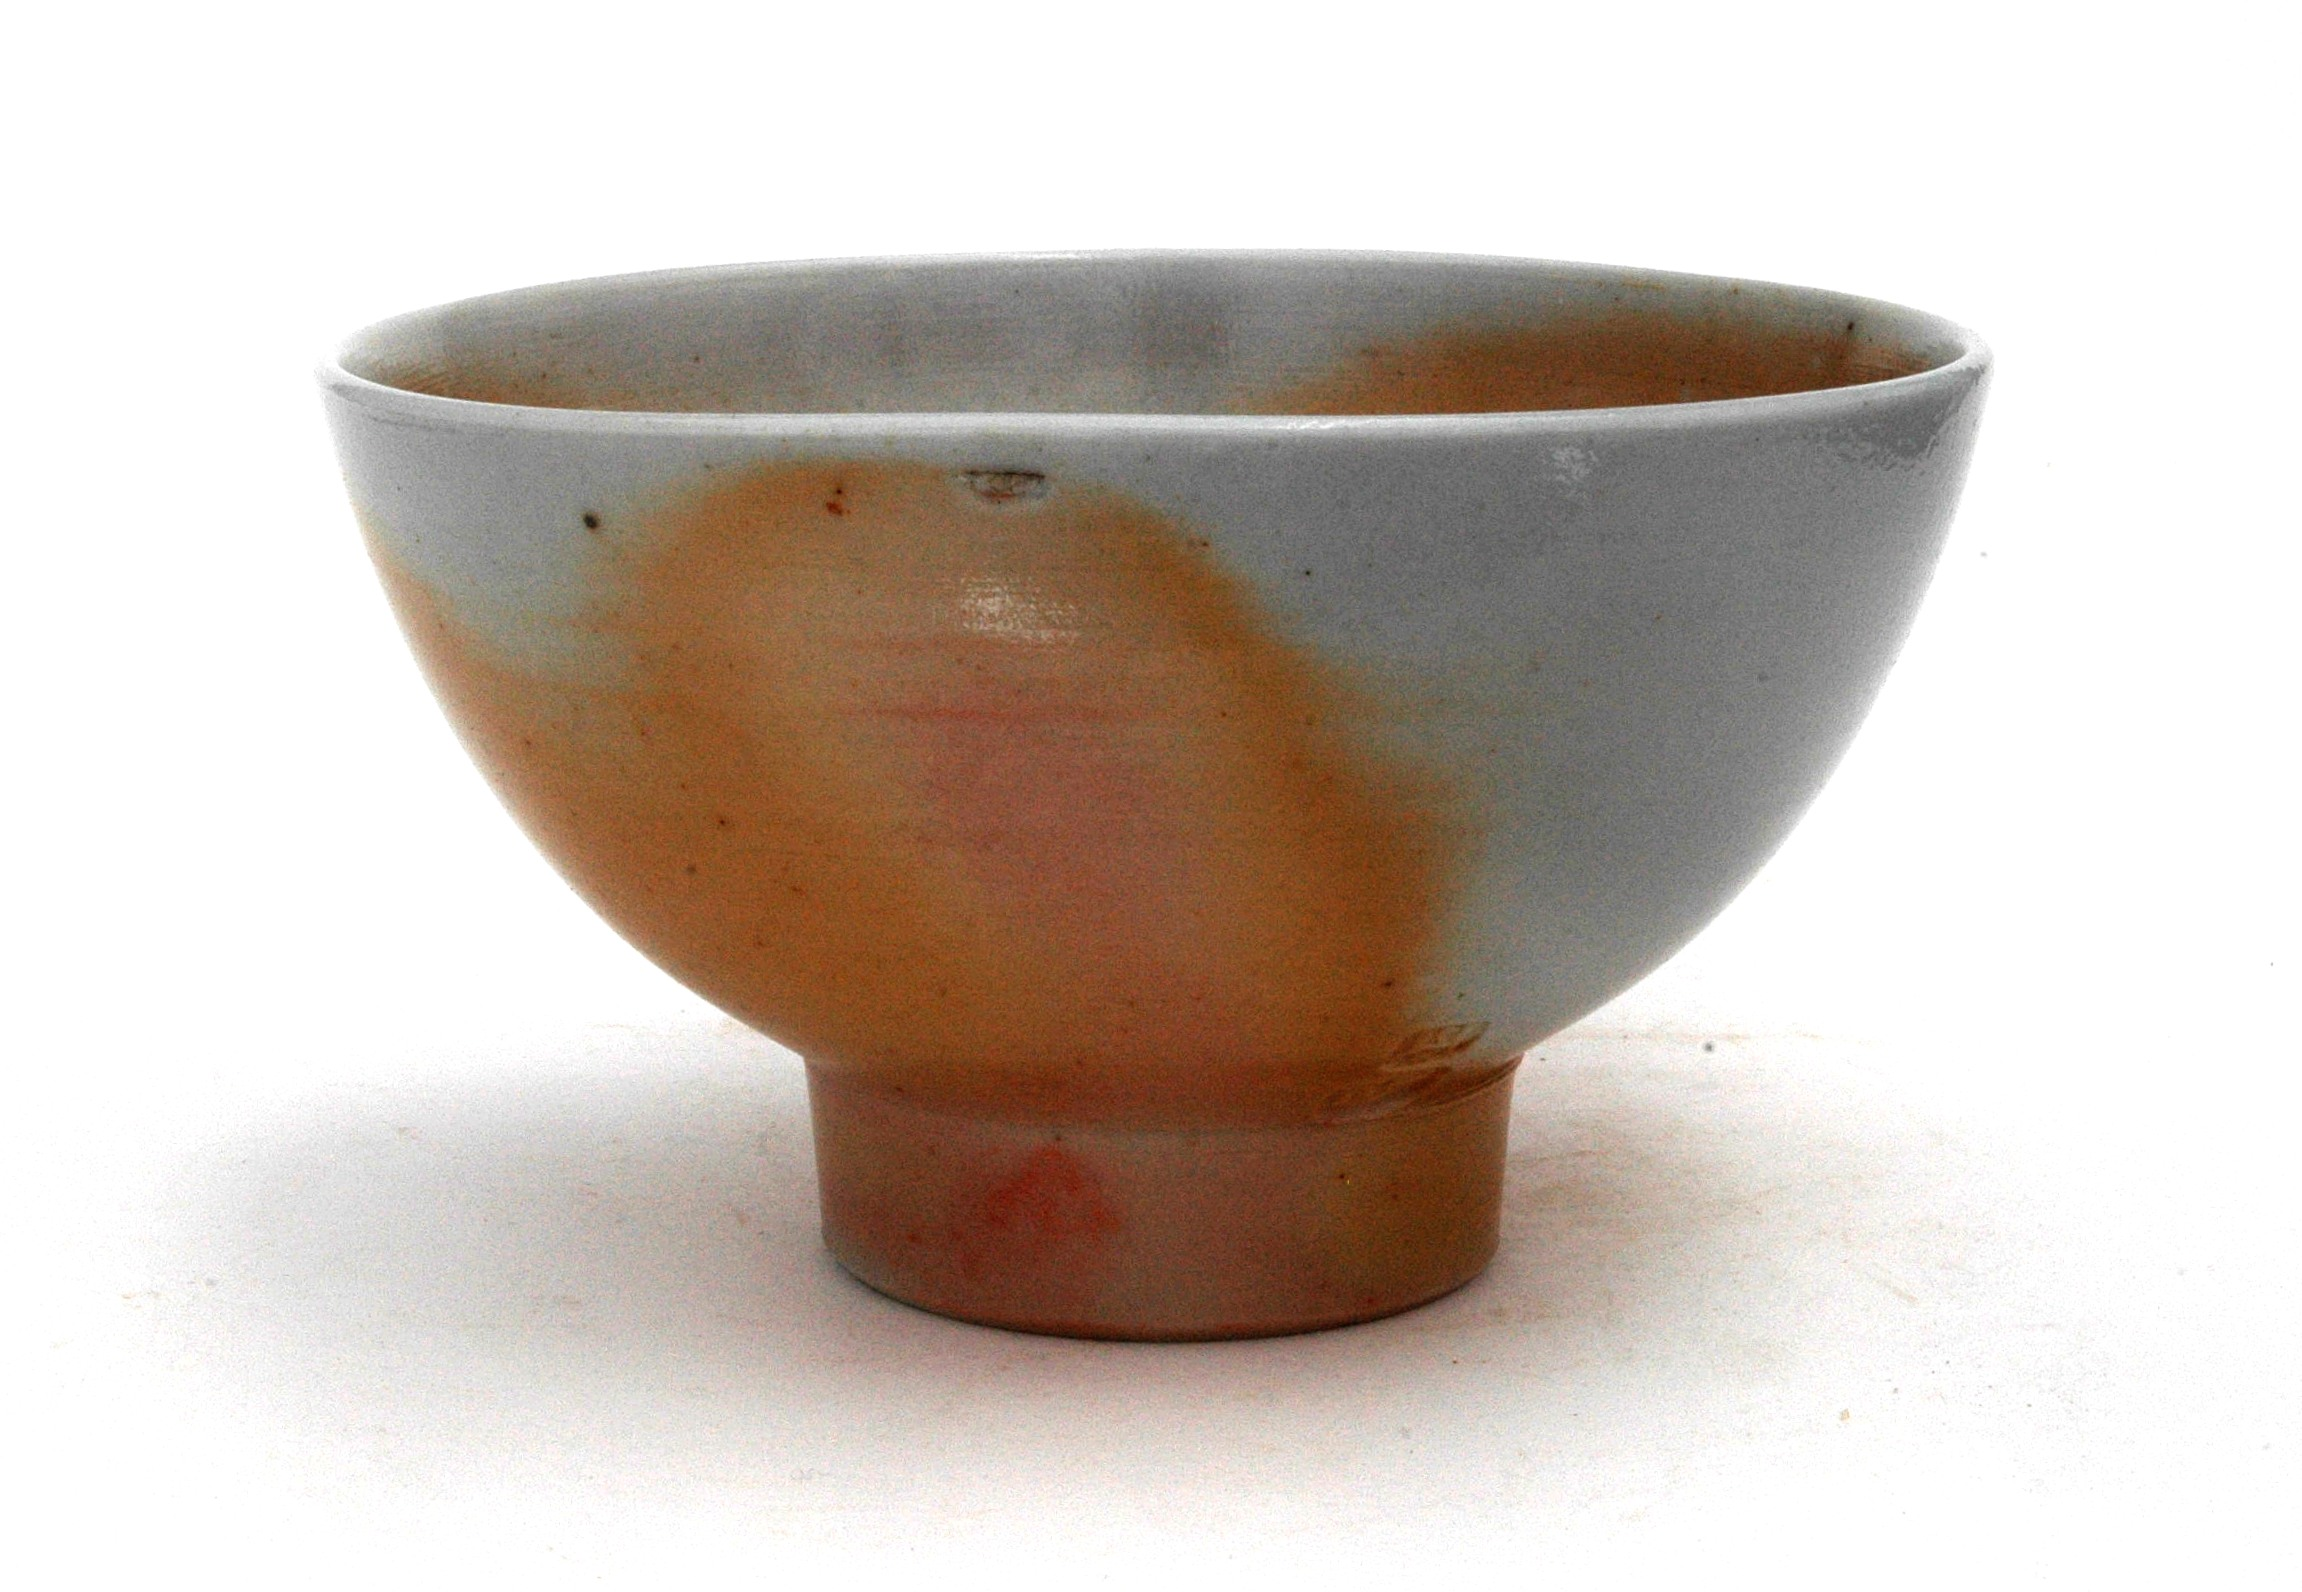 Steve Harrison, Co-existence, ceramic bowl, dimensions variable. Image courtesy the artist.